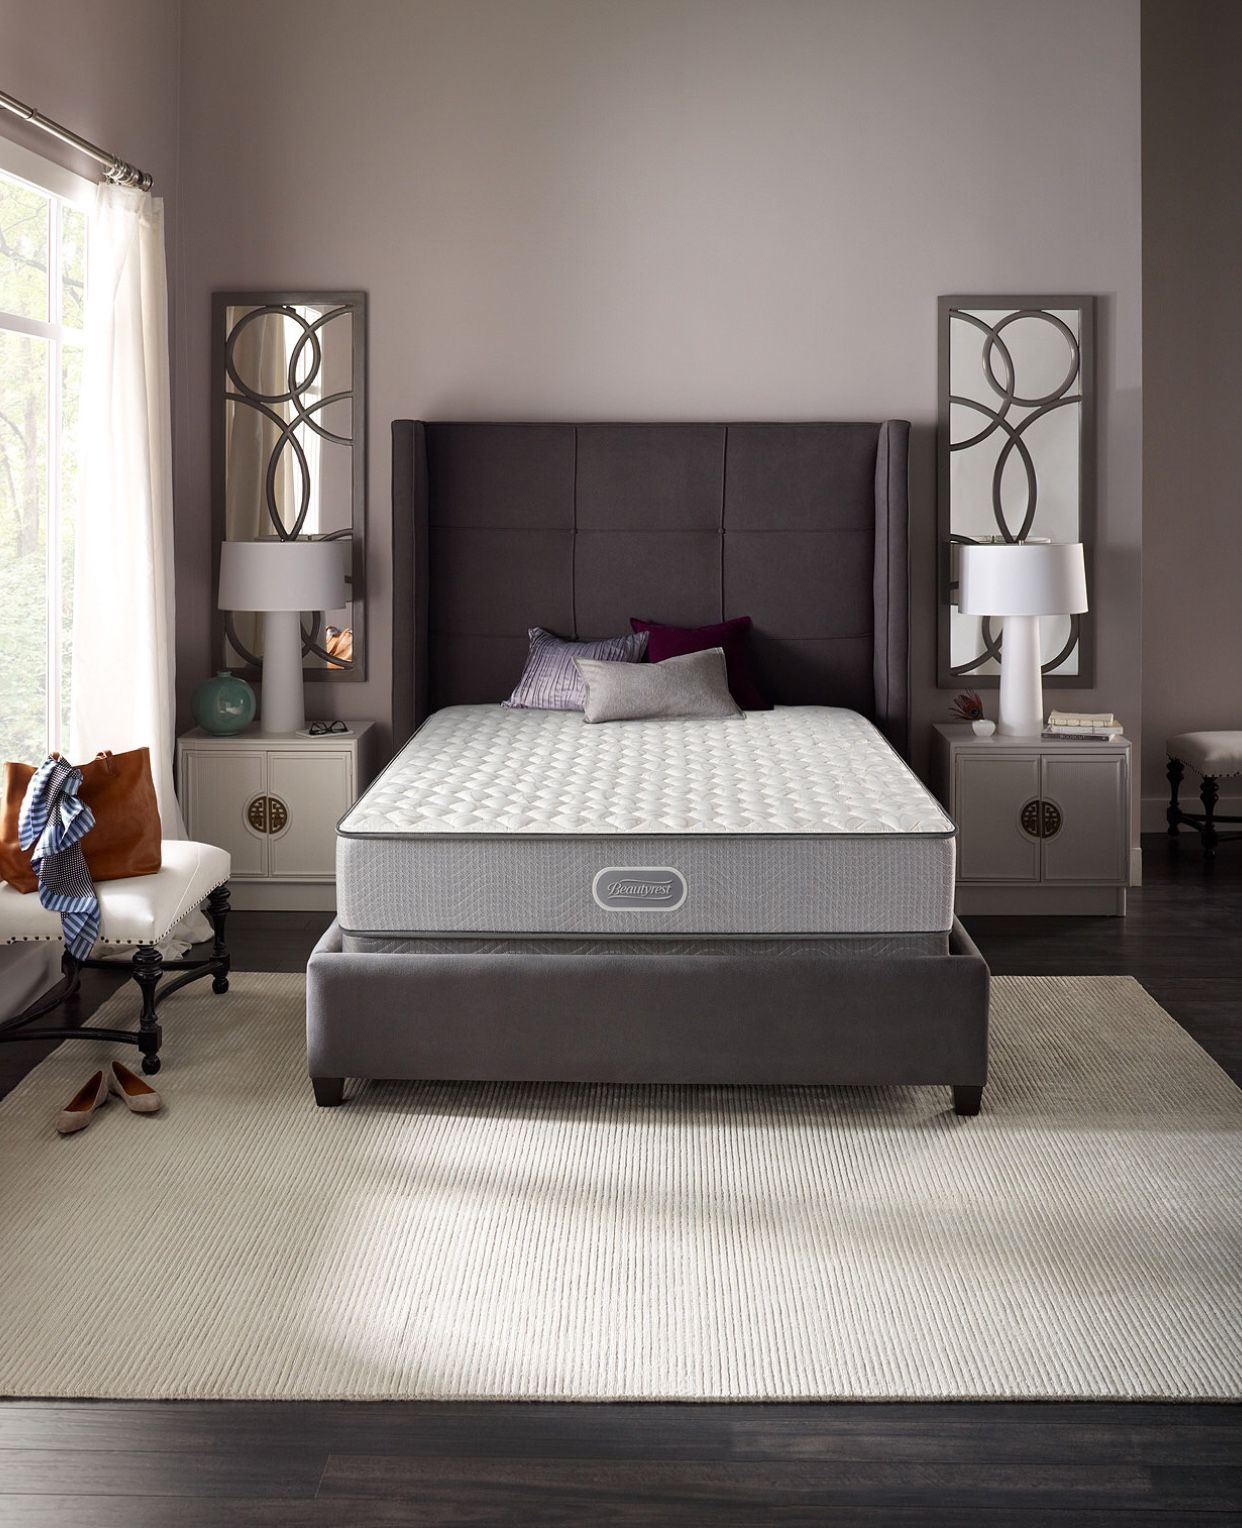 Pin by Lisa Law on Ideas Home Mattress sets, Firm